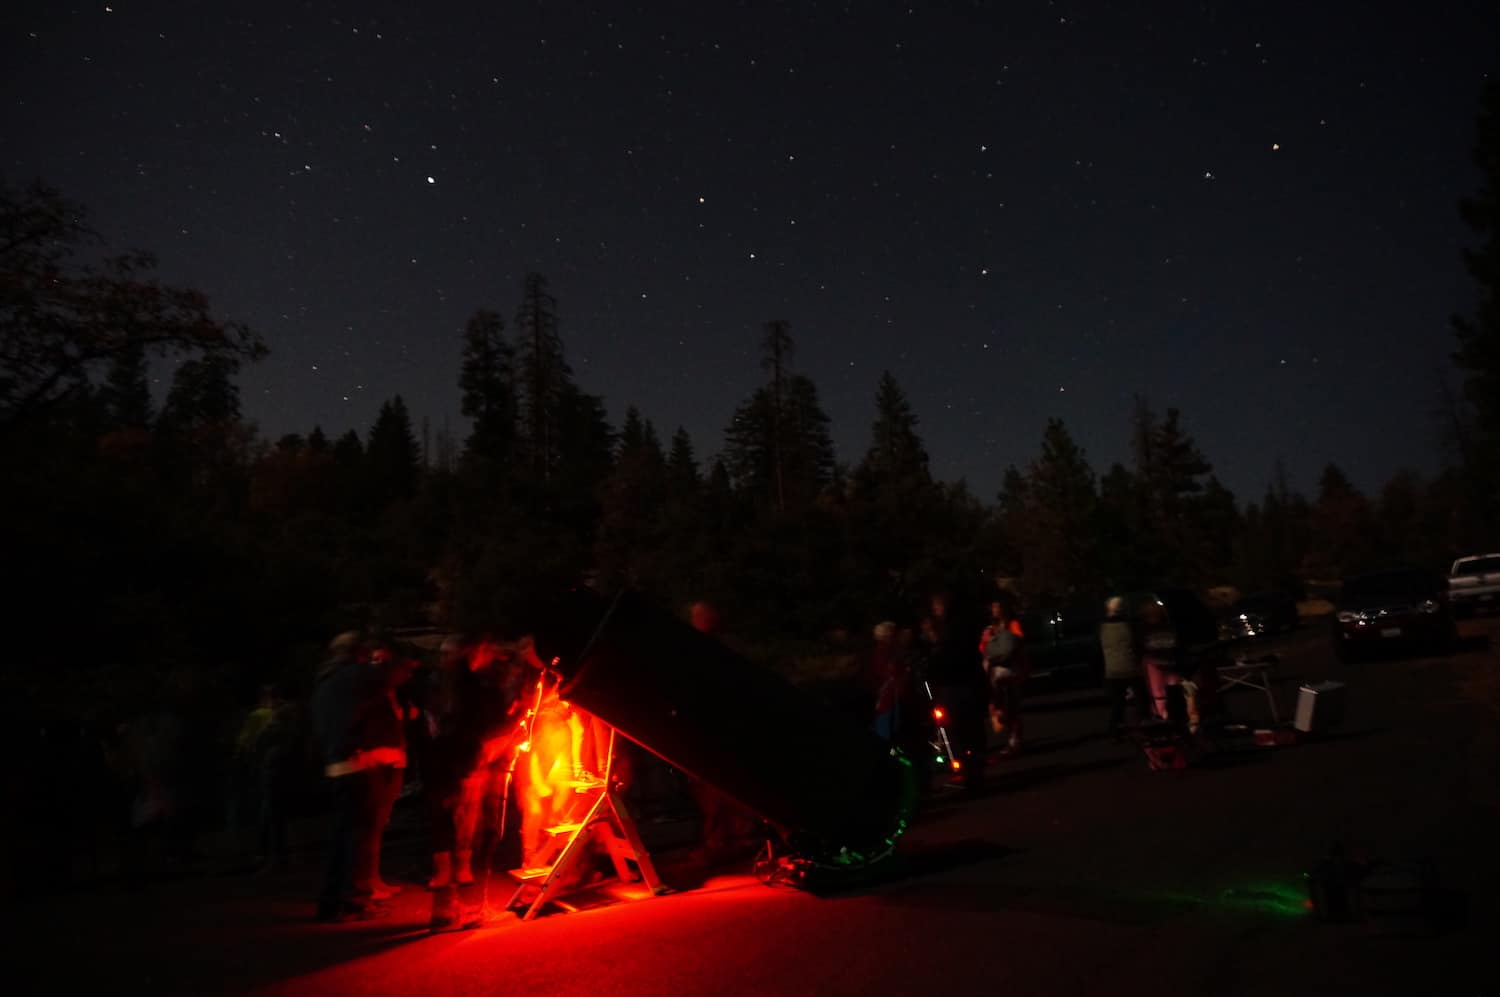 2018 Recap - November - Calaveras County Stargazing